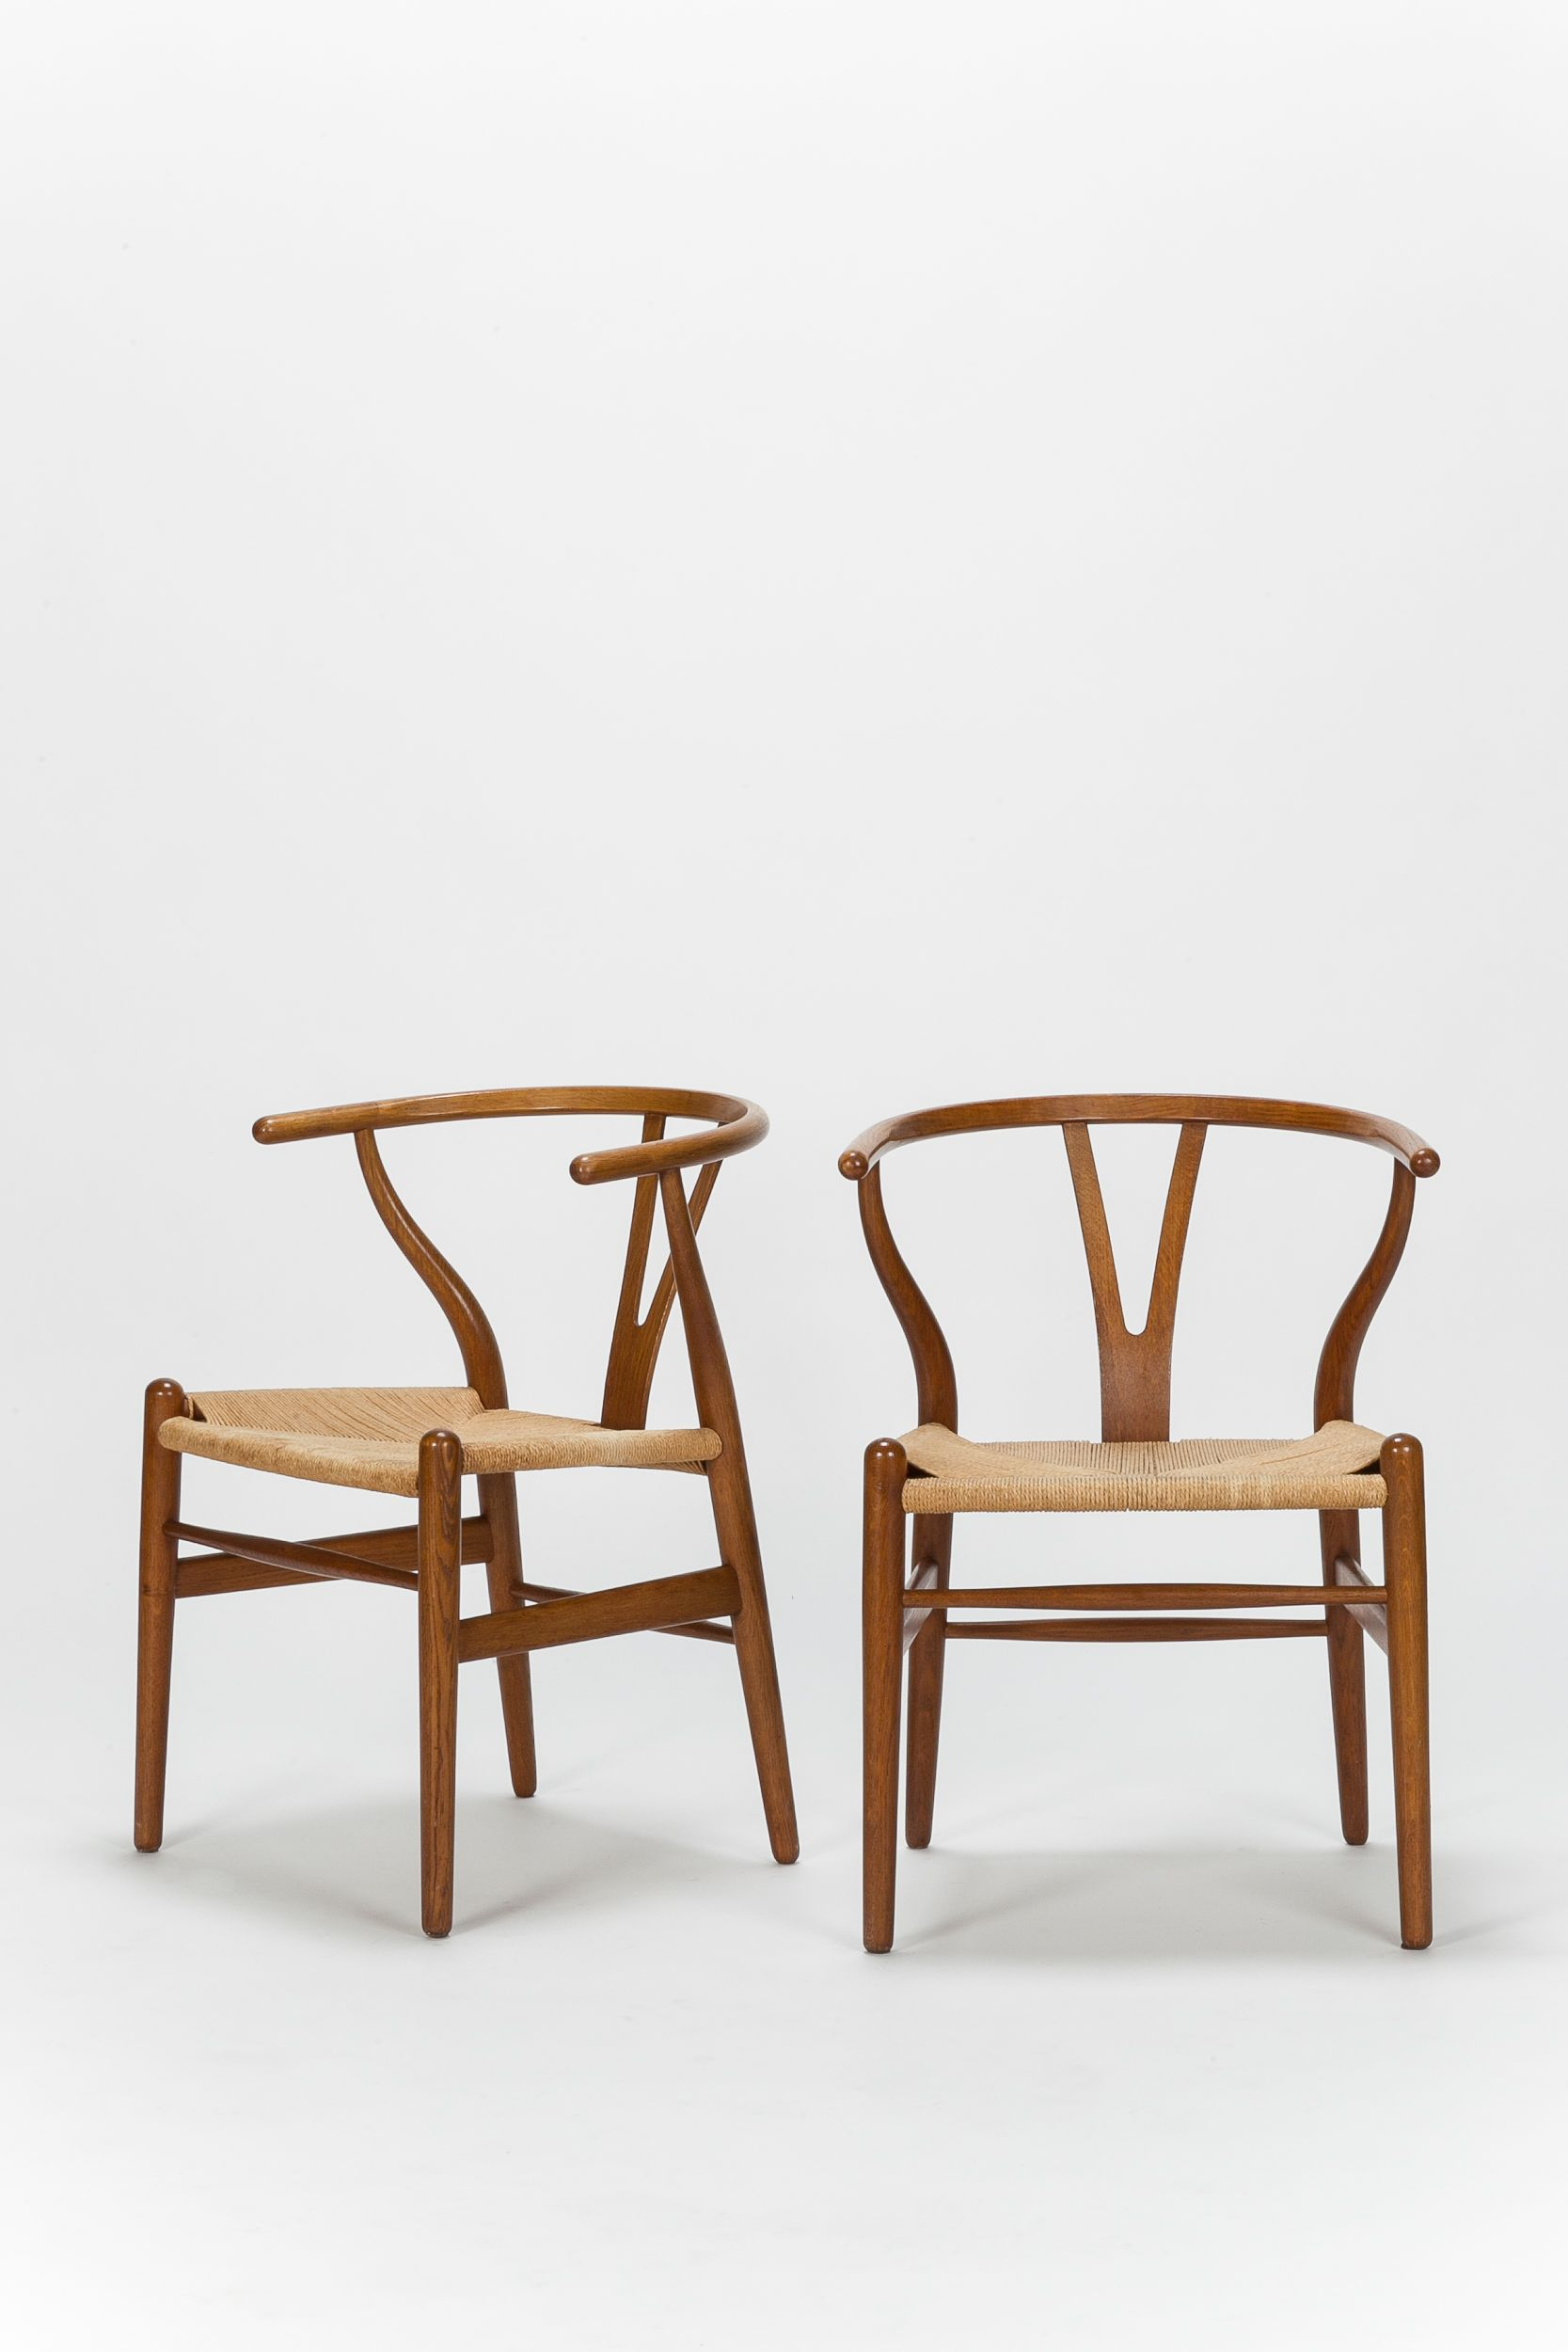 paar hans wegner wishbone chairs modell nr ch24 f r carl hansen son in d nemark gebeiztes. Black Bedroom Furniture Sets. Home Design Ideas